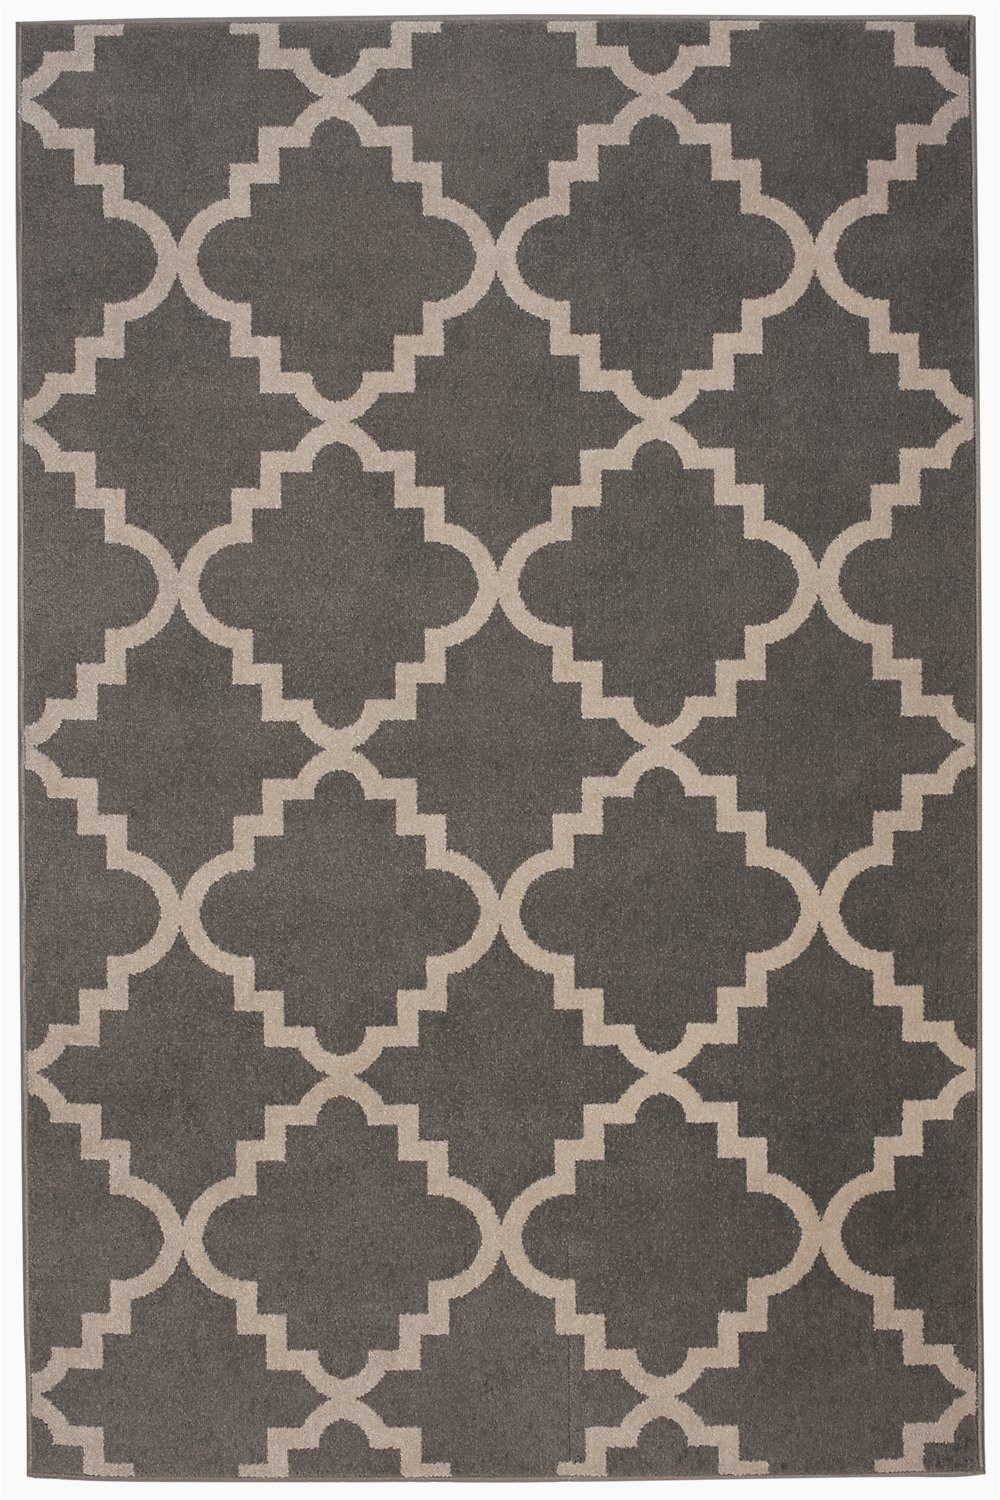 7 by 10 area Rug Taza area Rug – 7 X 10